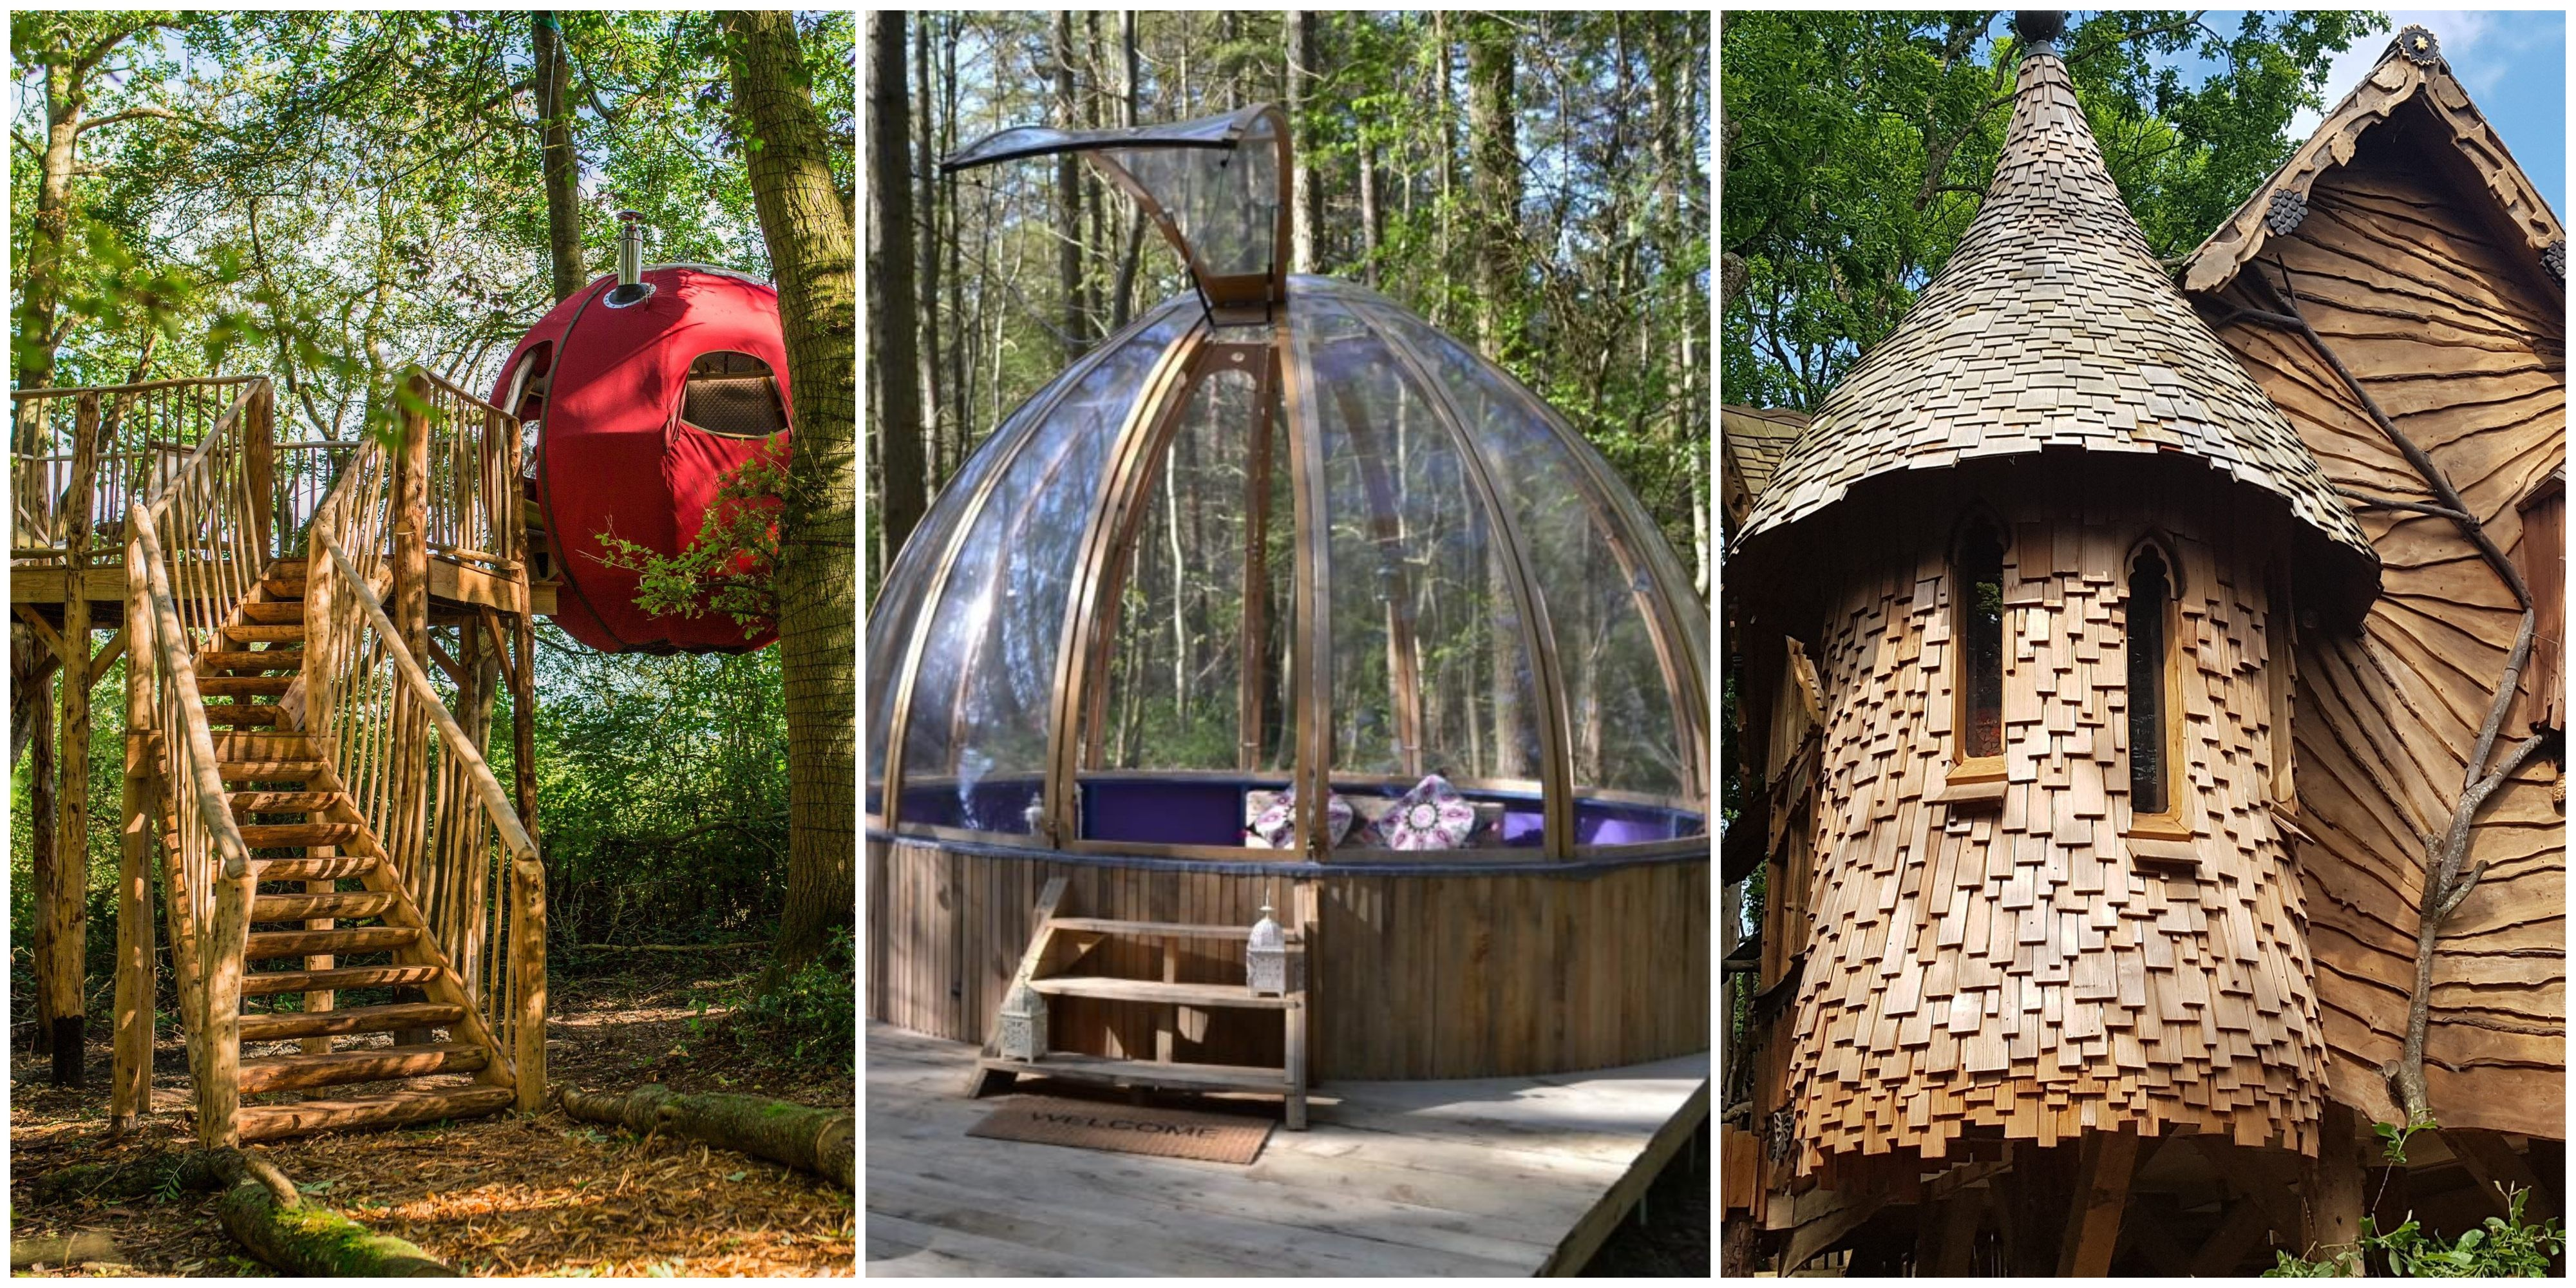 Setting up a glamping business